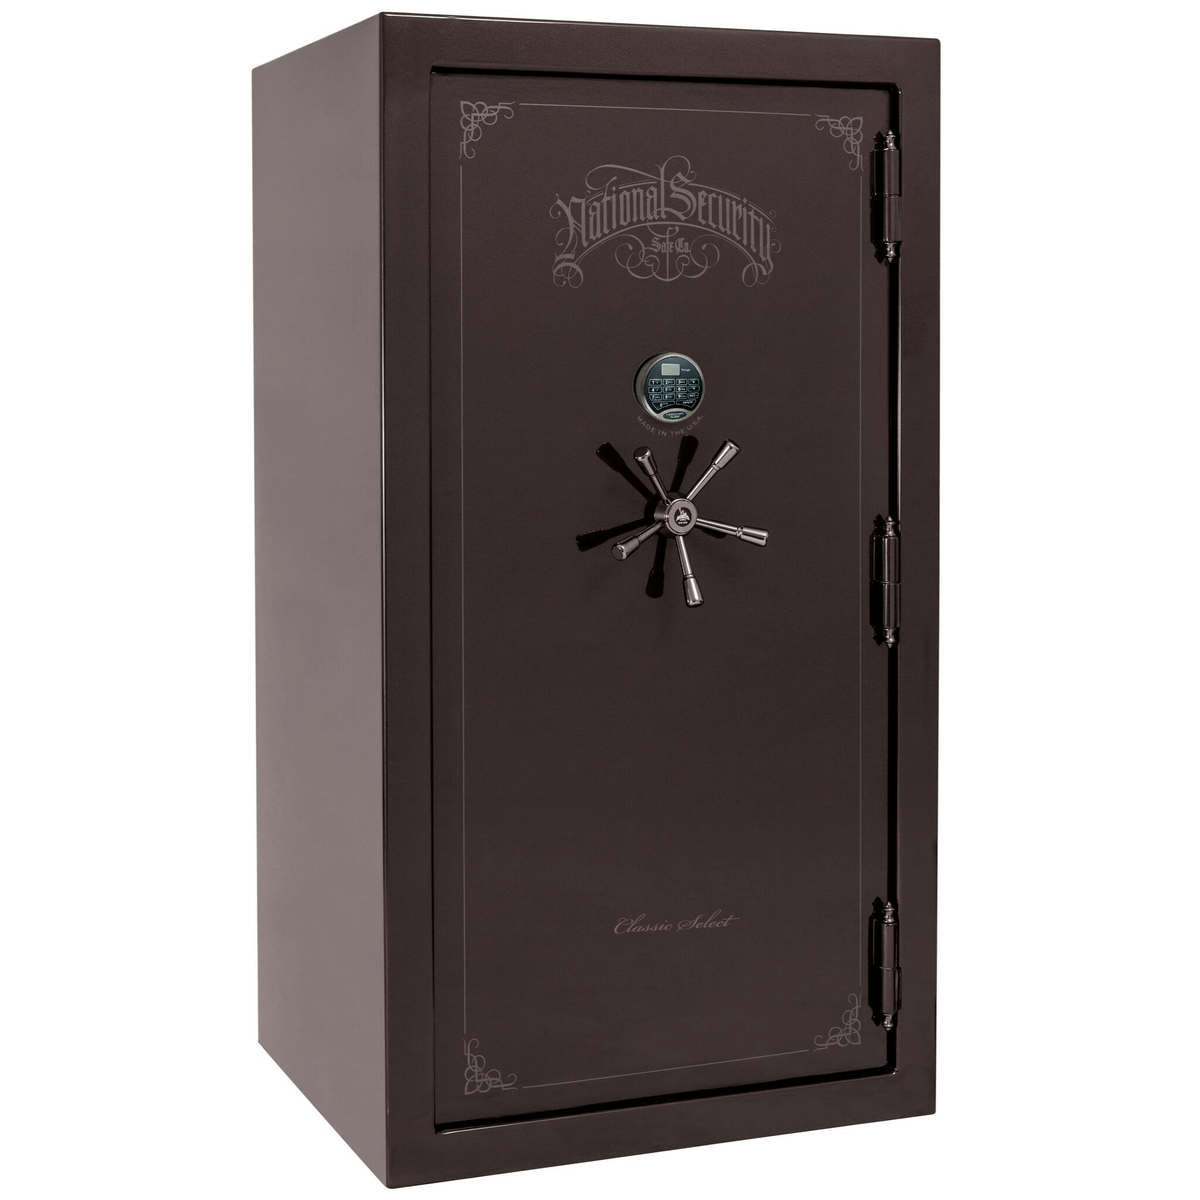 "Classic Select | 40 | Level 6 Security | 90 Minute Fire Protection | Black Cherry Gloss | Black Electronic Lock | 66.5""(H) x 36""(W) x 32""(D)"